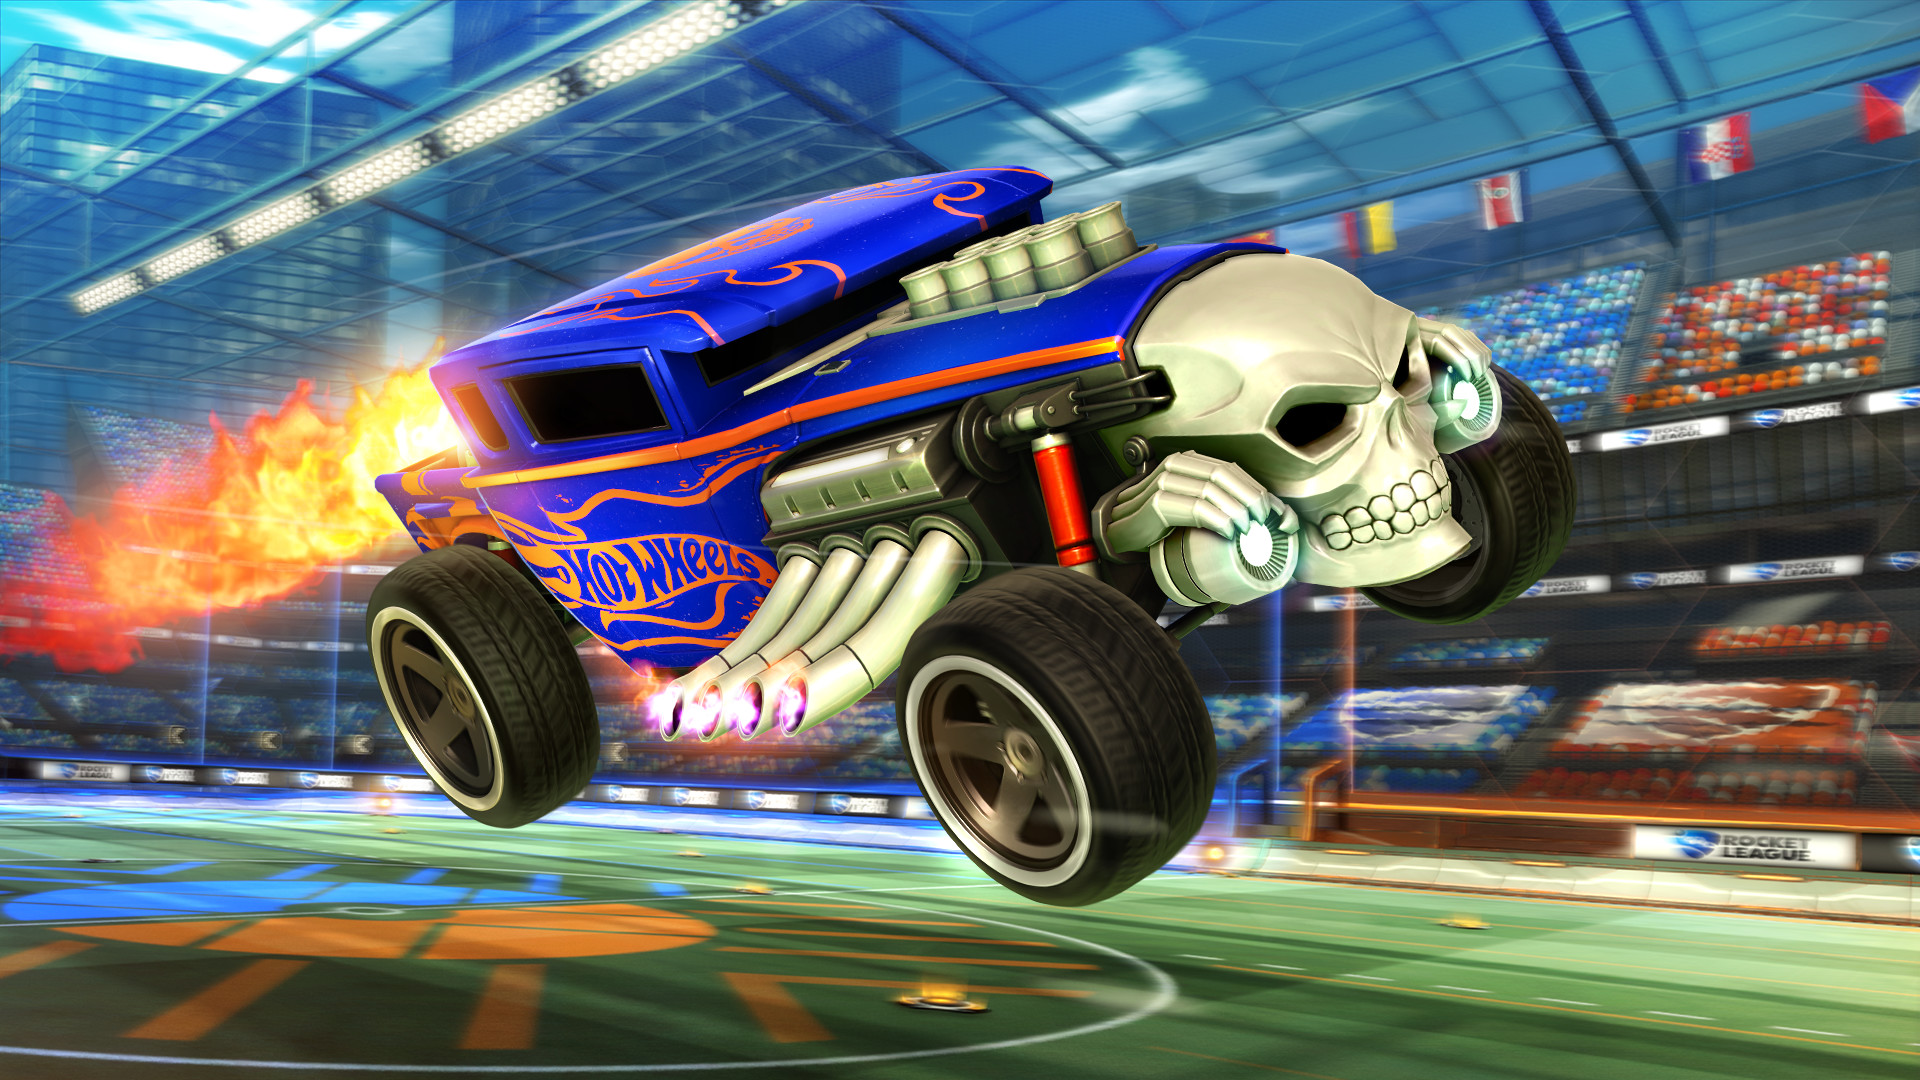 Buy now Rocket League - Hot Wheels Bone Shaker (Steam Gift